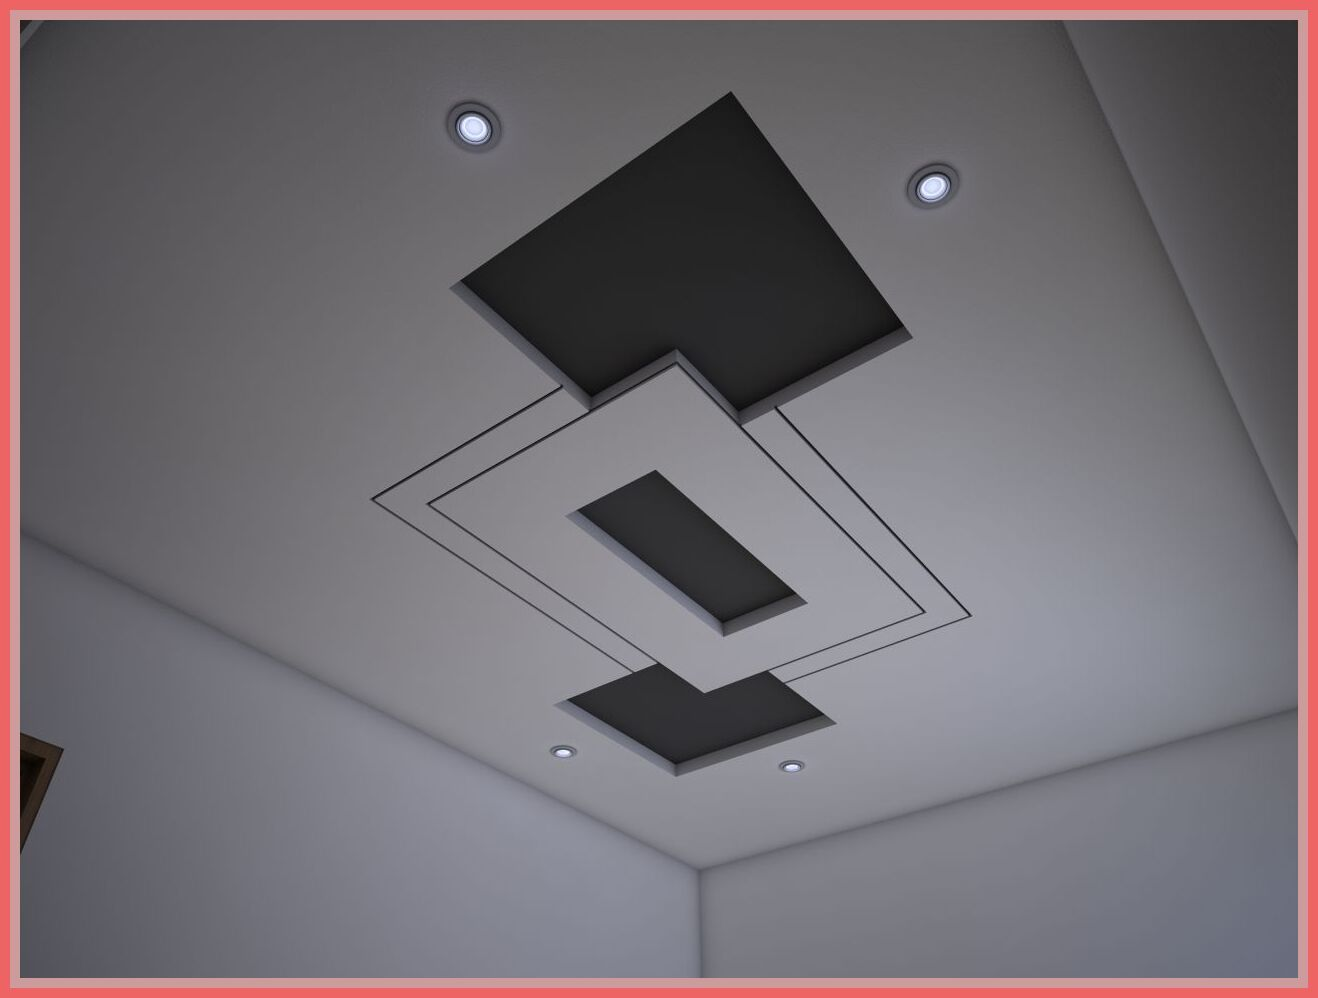 83 Reference Of Simple Ceiling Design For Bedroom In Pakistan In 2020 Simple Ceiling Design Ceiling Design Bedroom Ceiling Design